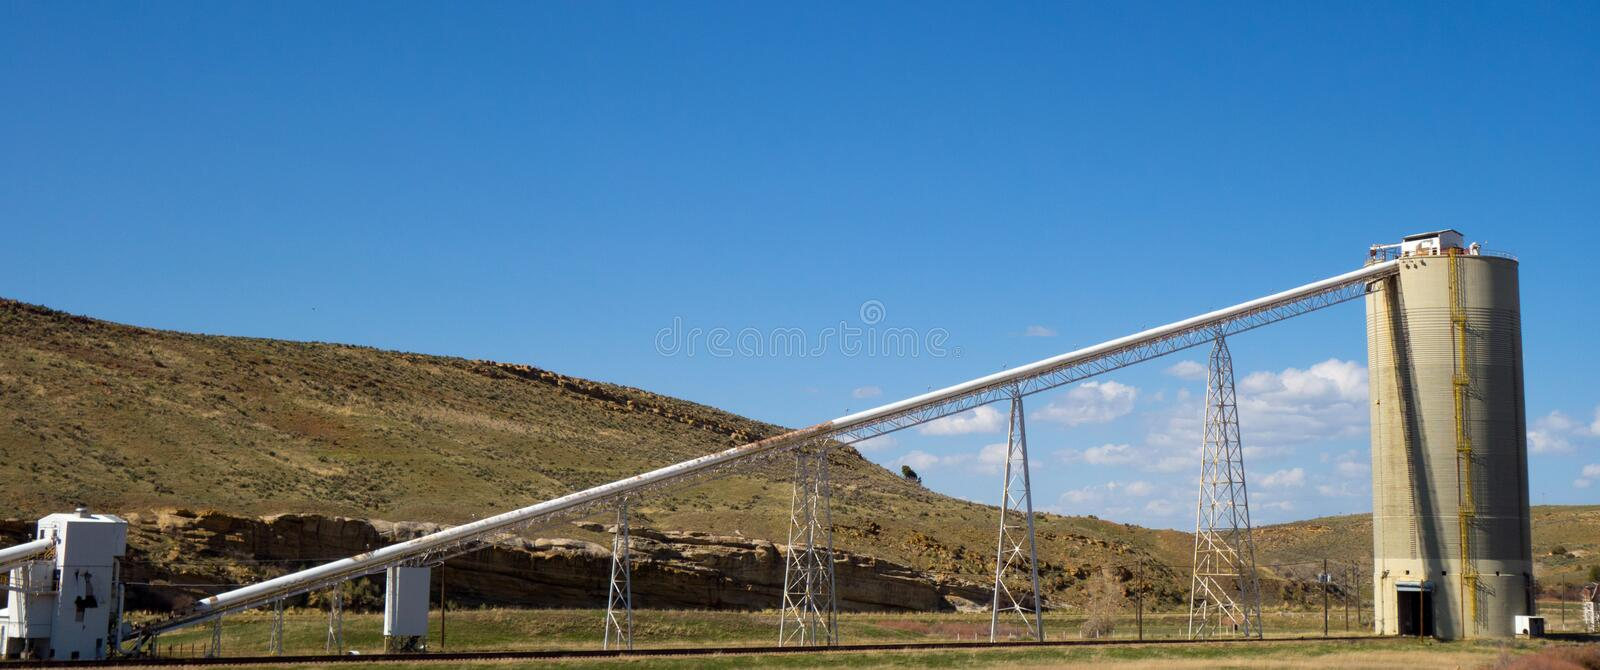 A coal mine in colorado. A closed mining factory as seen from the road royalty free stock images